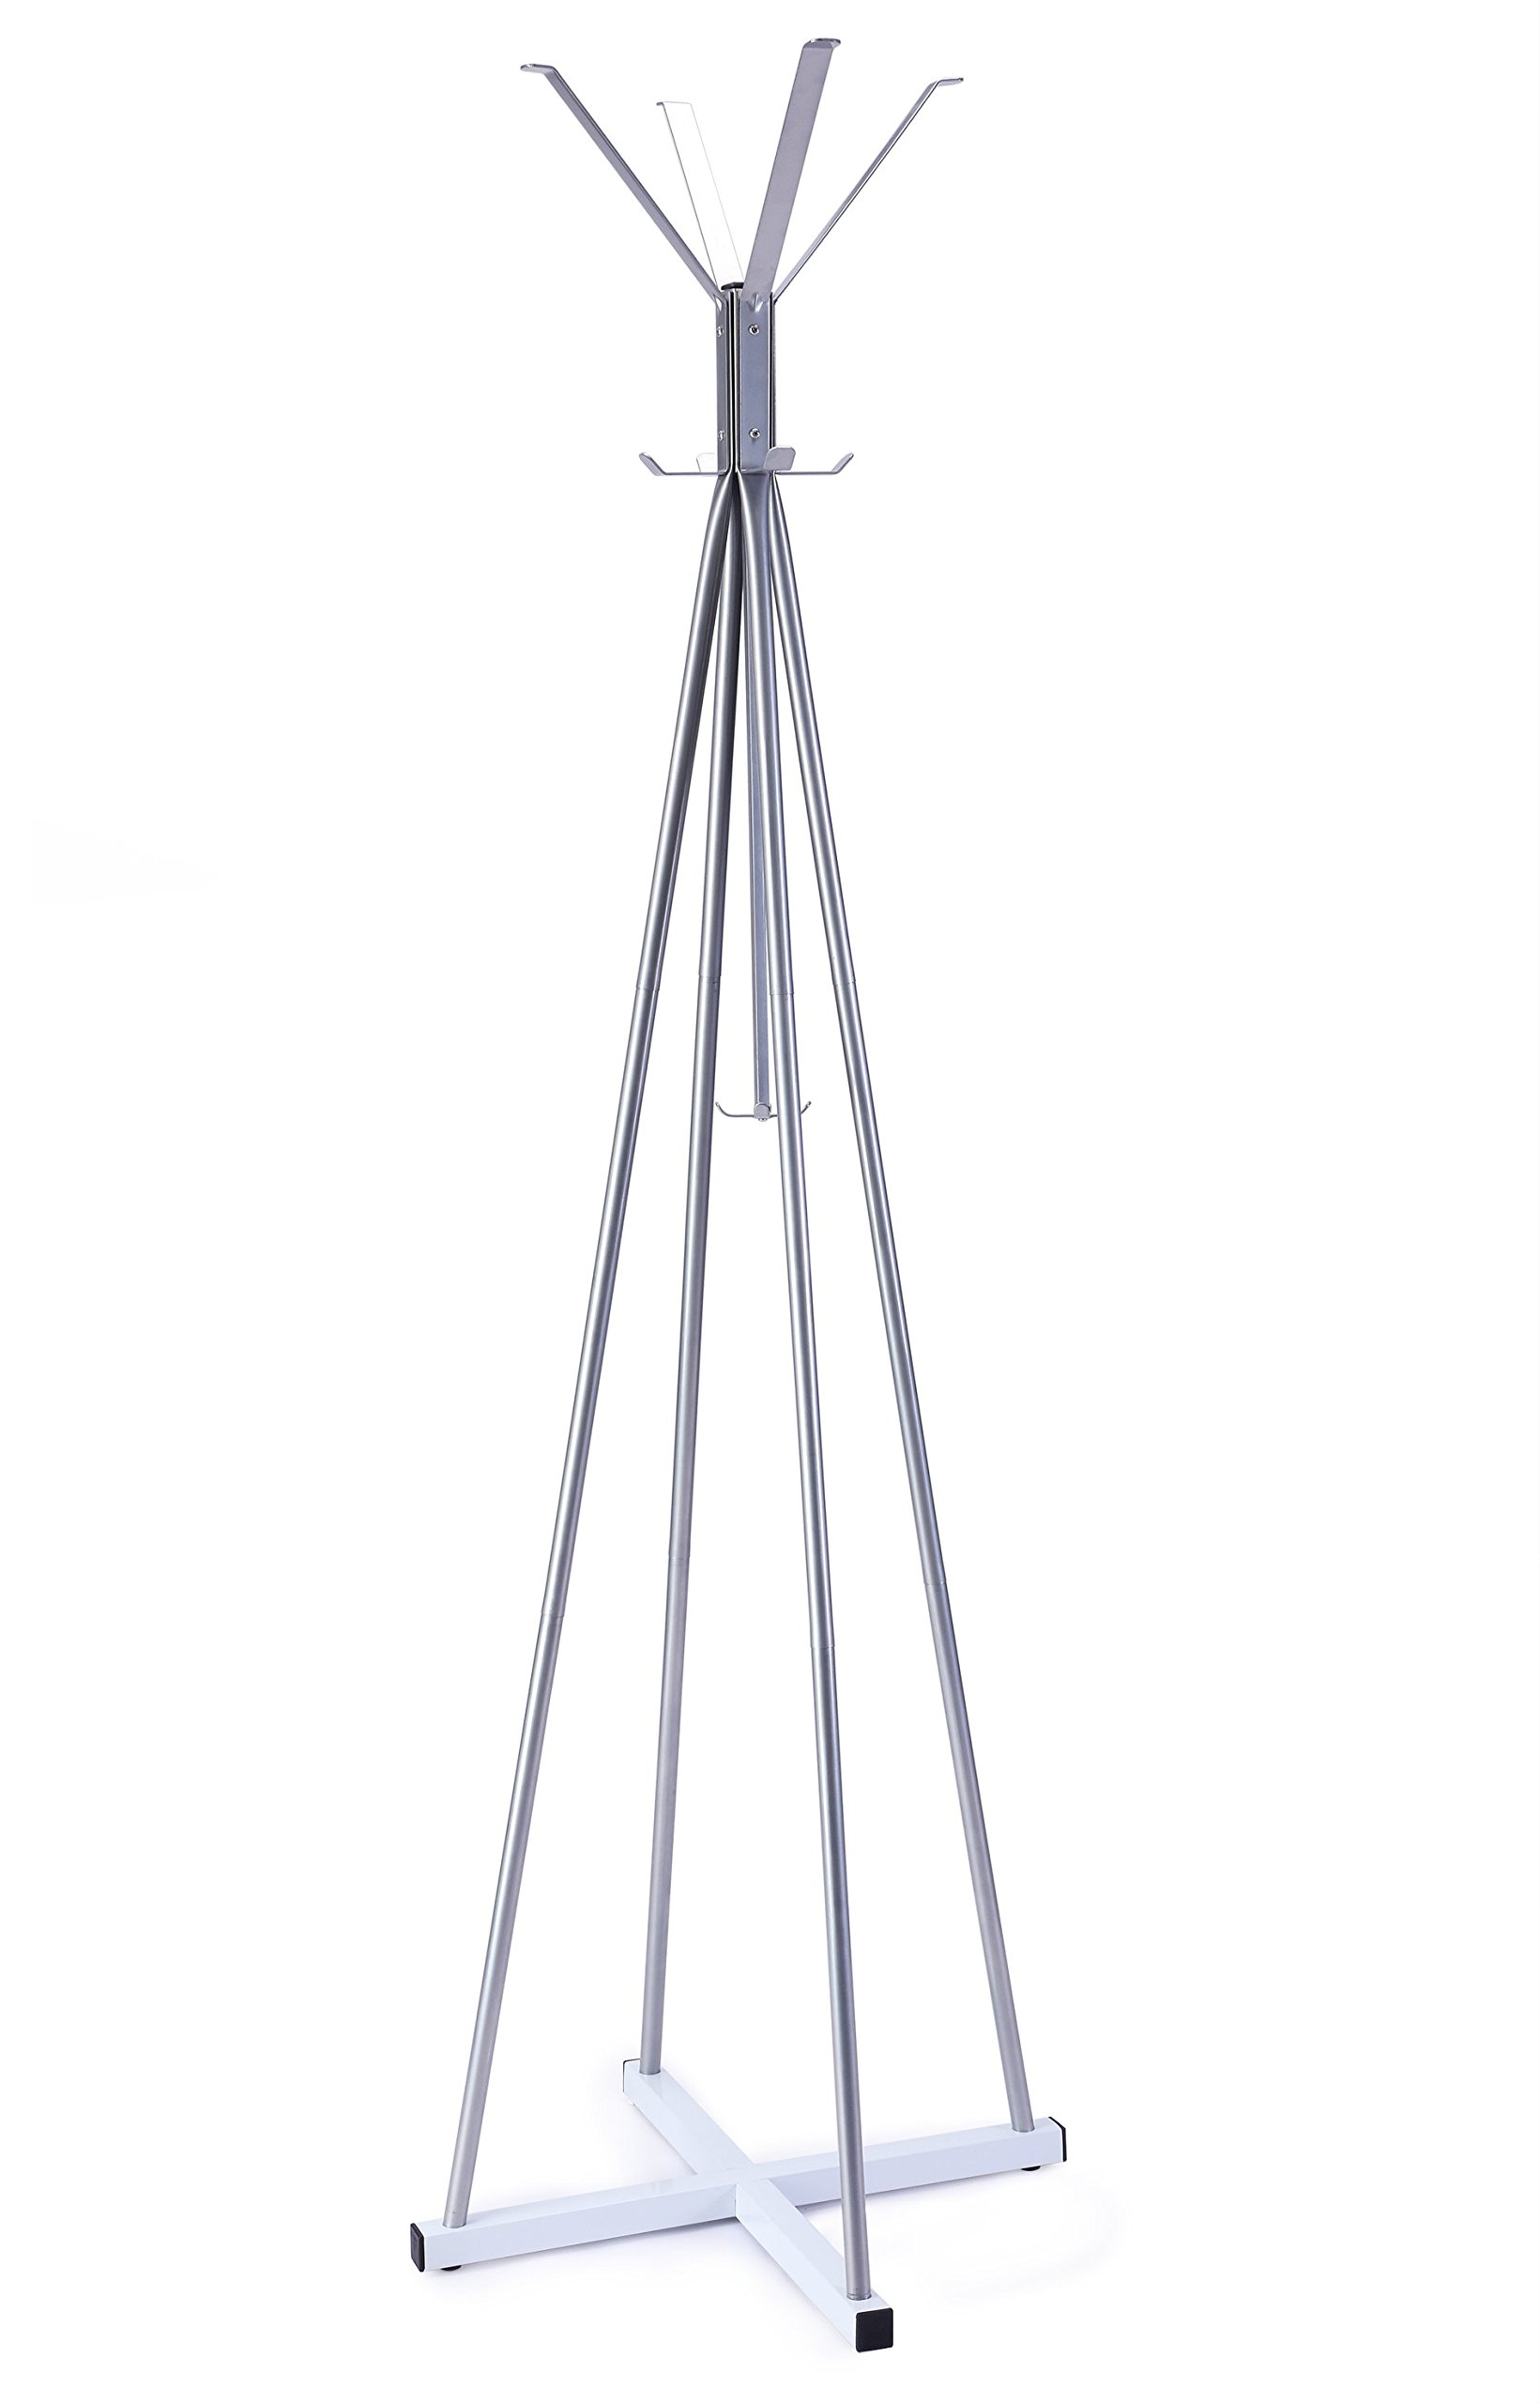 WILSHINE Coat Tree Rack Free Standing Metal Modern Entryway Hat Purse Jacket Rack Hanger Stand with 12 Hooks Cross Shaped Base, Silver/White - STURDY: 4 supporting tubes and cross shaped base form the metal frame of this standing coat rack, super sturdy, almost no chance of tipping over when loaded with garments MULTI-PURPOSE: This free standing coat tree has 12 hooks of different sizes, divided into 3 tiers, from top to bottom, providing a storage solution for coats, jackets, scarves, hats, purses, handbags, schoolbags of the whole family; the hooks are also distributed from central to peripheral, making it more easily to hang and grab garments when you are in a hurry MODERN: Combination of silver frame and white base, this coat hanger stand is artistic enough to decorate your entryway, bedroom or office while playing its role of organizing - entryway-furniture-decor, entryway-laundry-room, coat-racks - 71upg0drfpL -